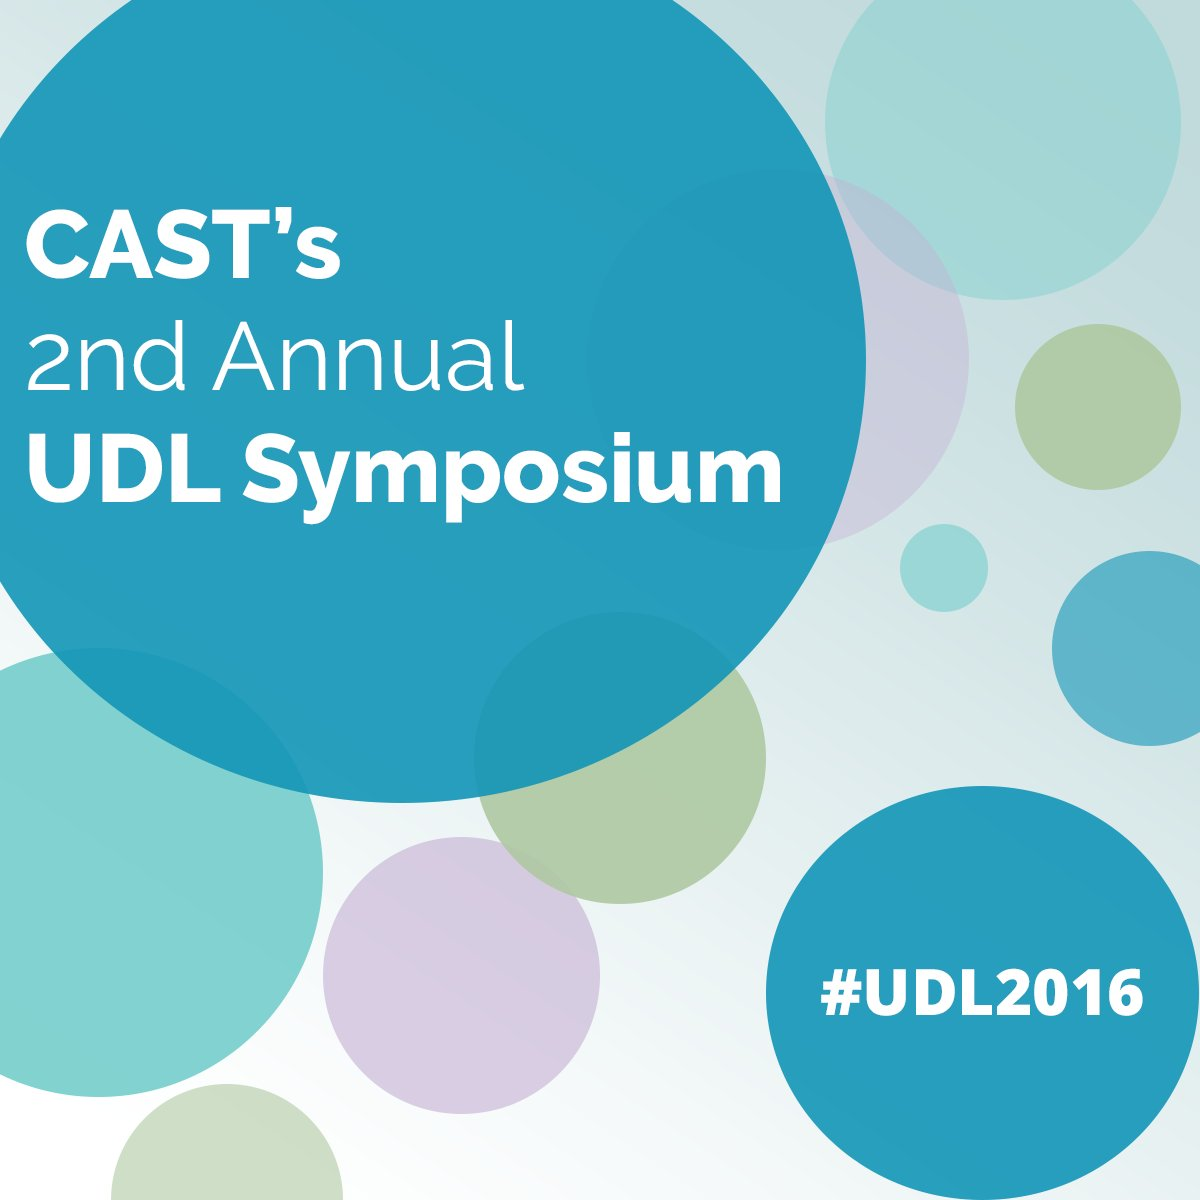 Did you miss the great sharing yesterday at #UDL2016? Not to worry, we captured it here: https://t.co/7RkxIOtstN https://t.co/z9WHZBM0rI